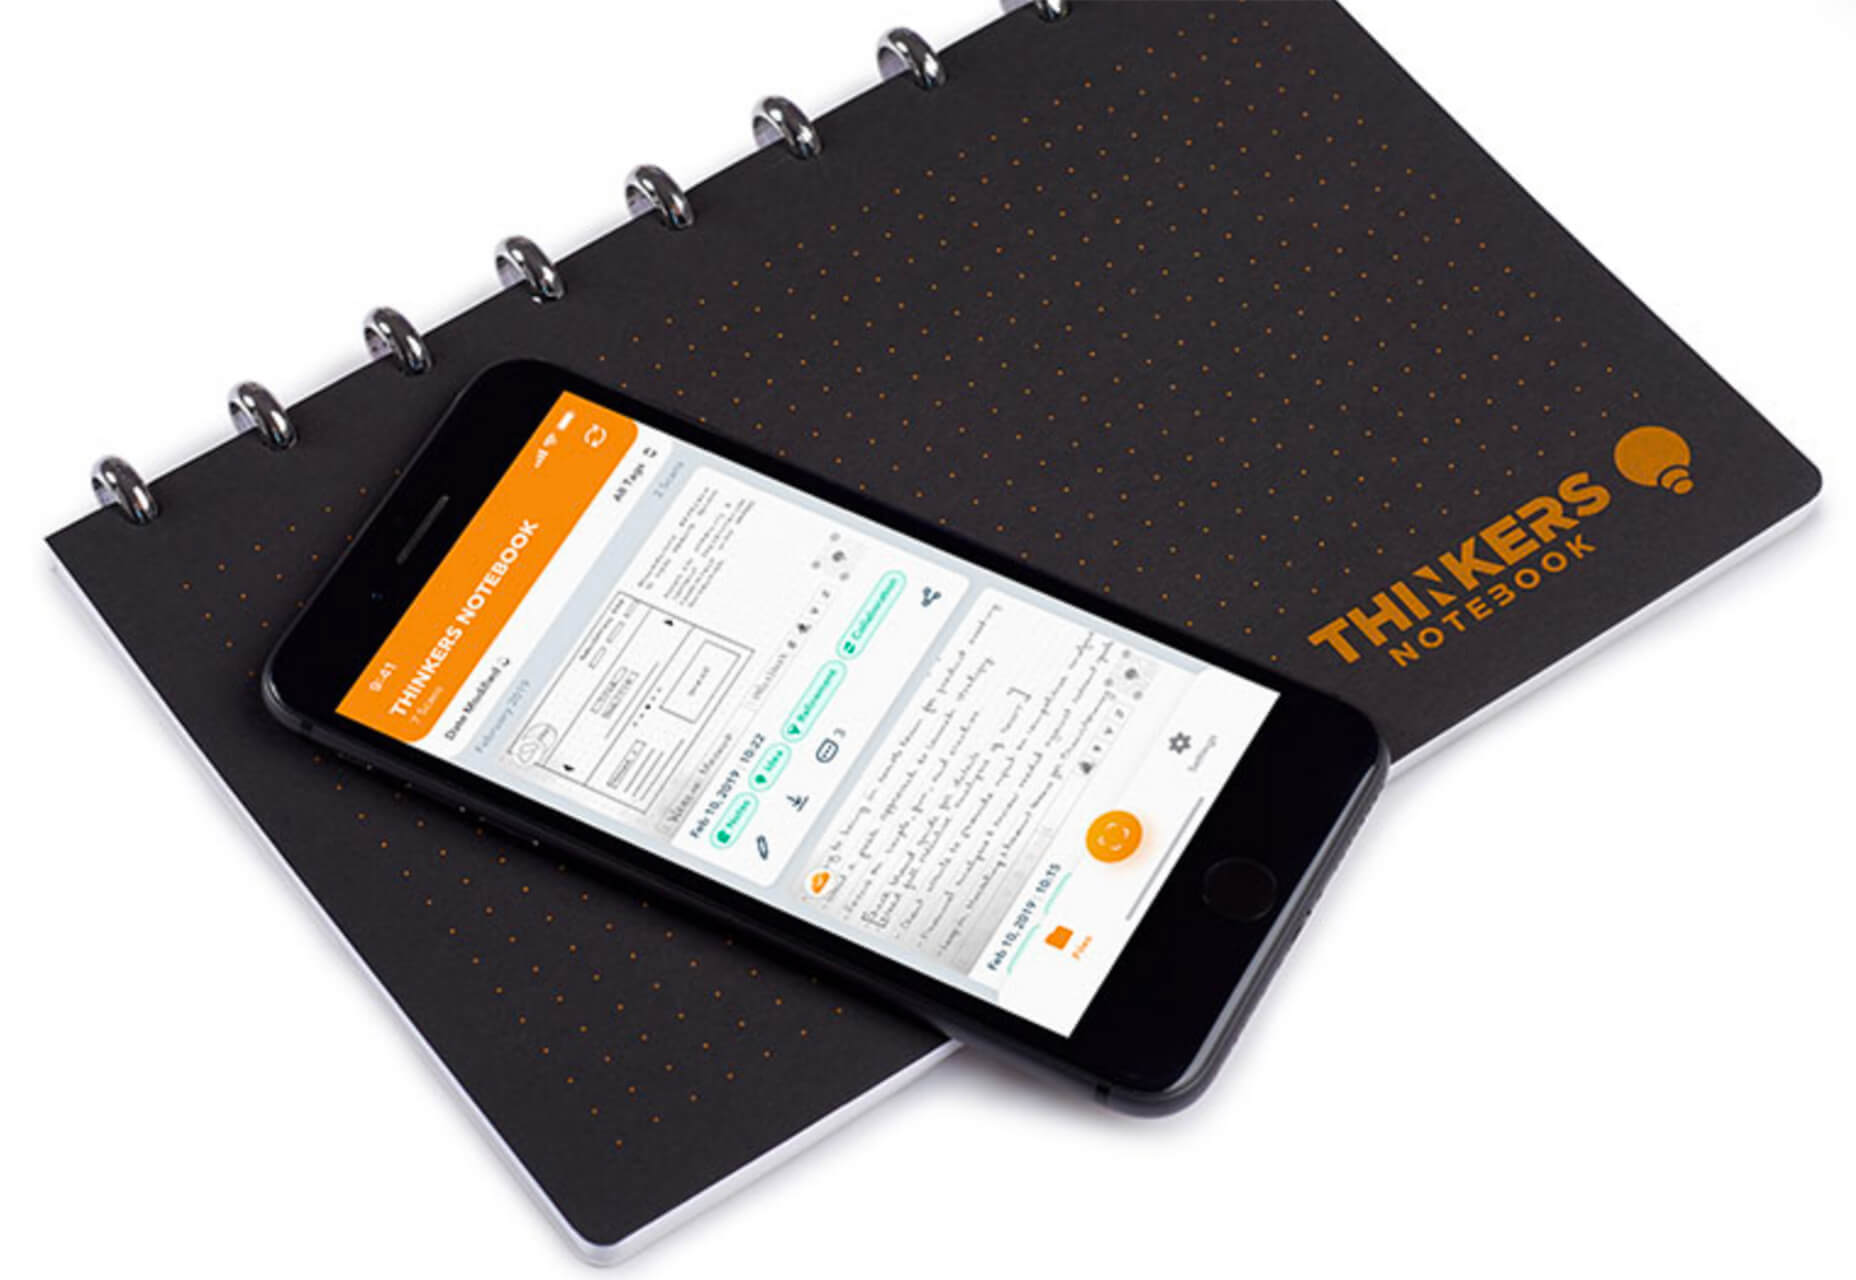 Thinkers Notebook and App